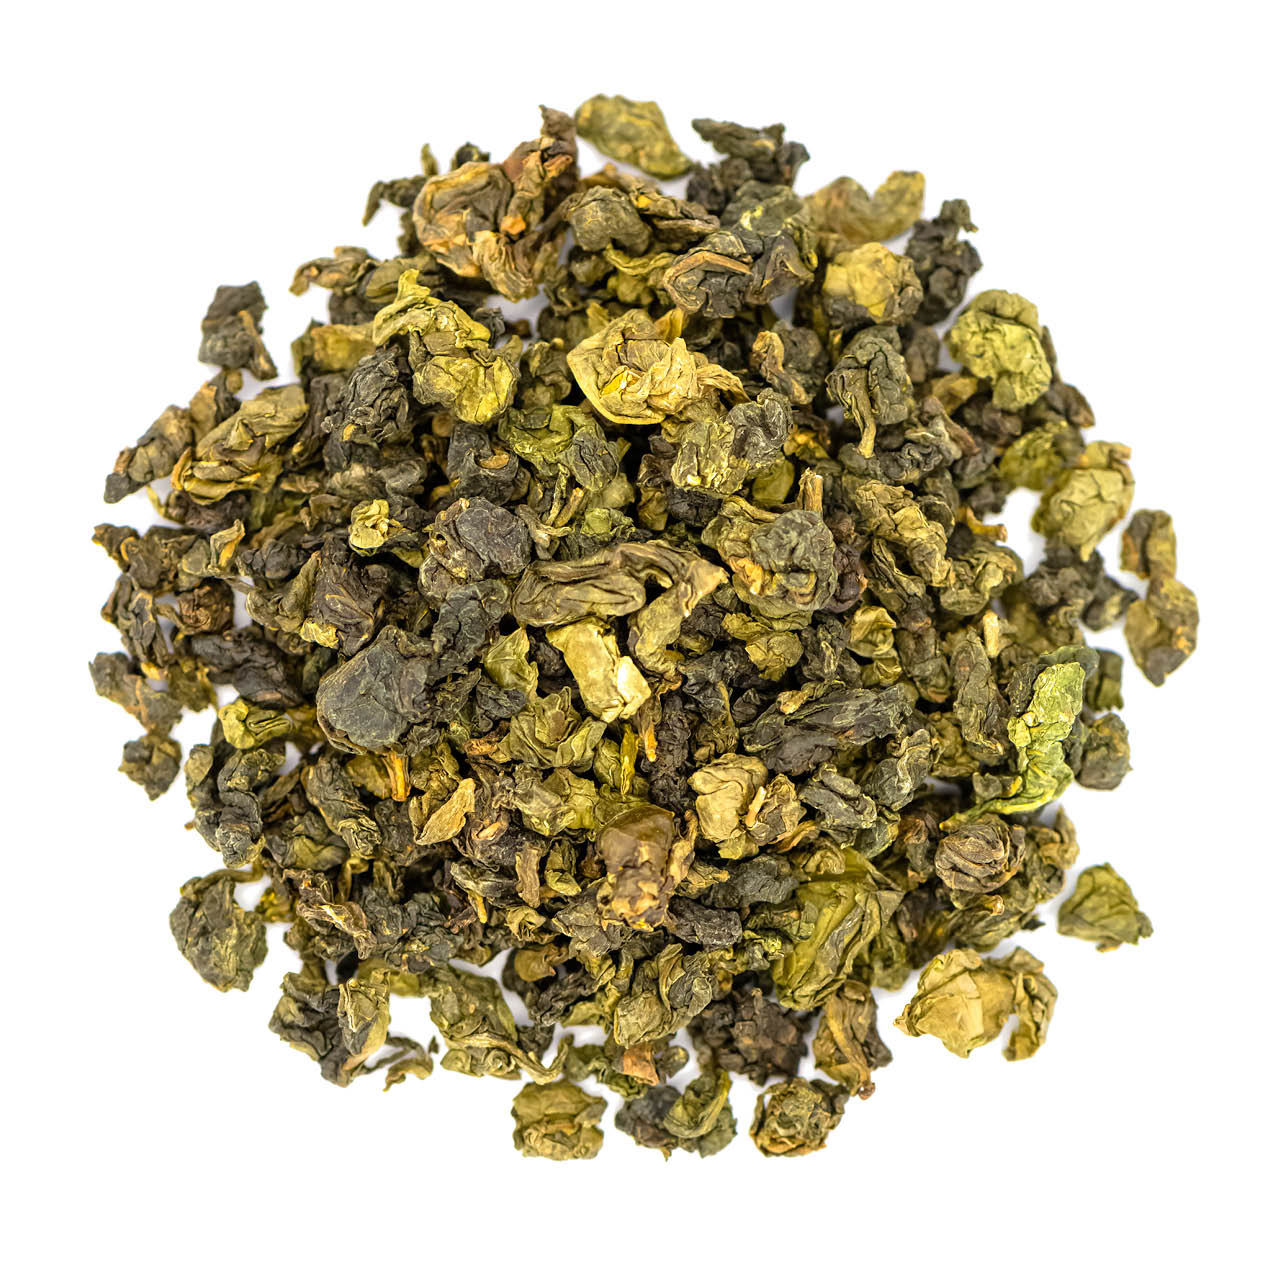 Fairtrade Organic Lady Grace Oolong Tea by Tielka